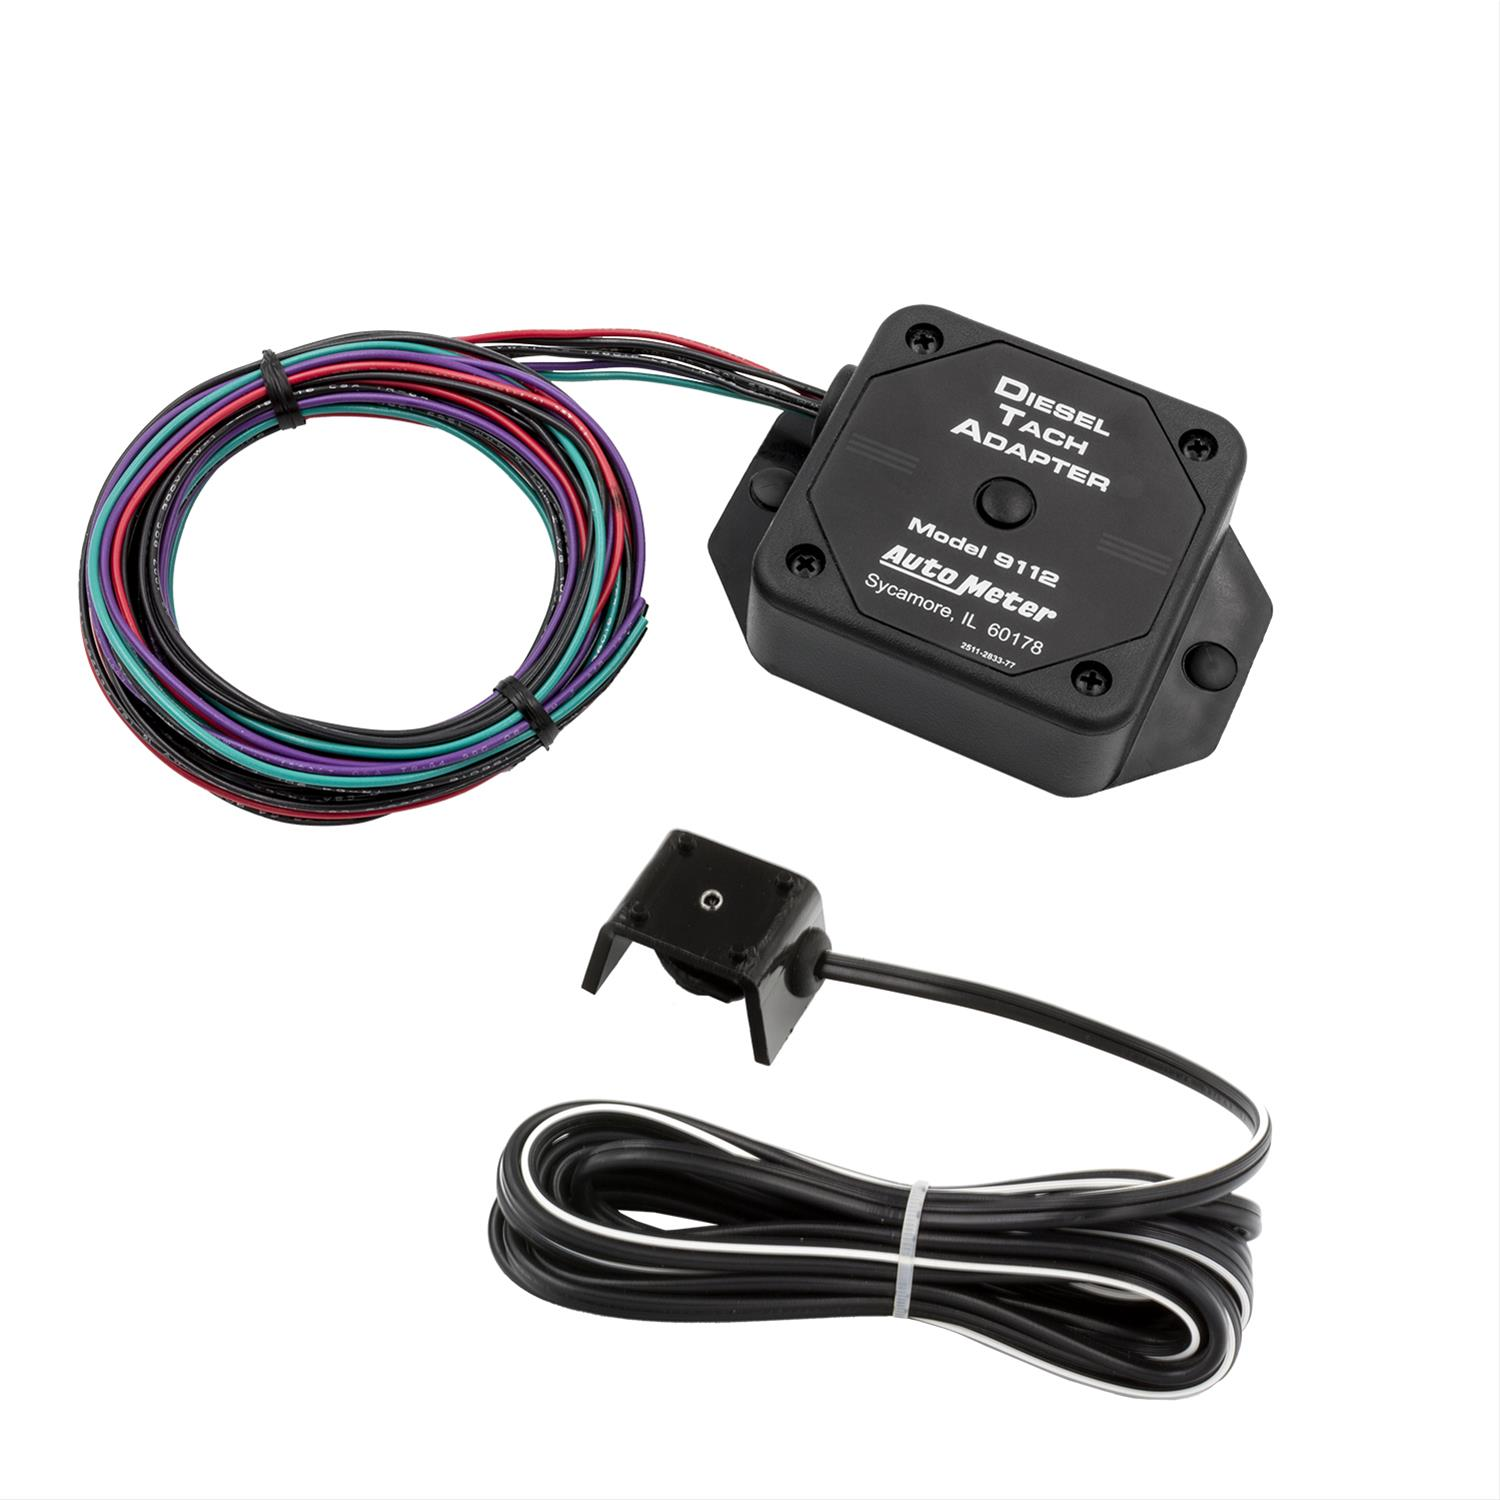 AutoMeter Diesel Tach Adapters 9112 - Free Shipping on Orders Over $49 at  Summit Racing